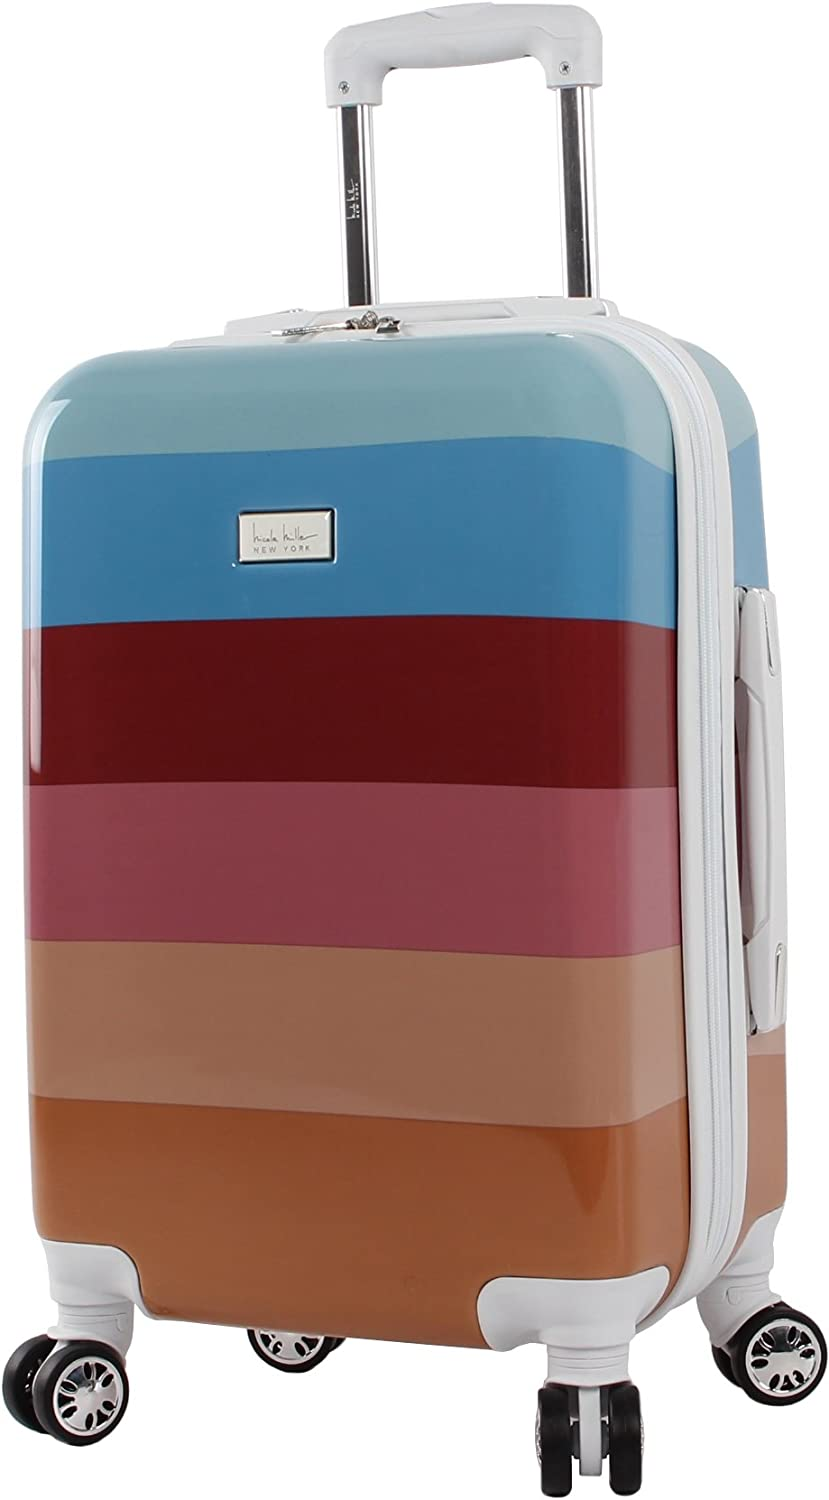 Nicole Miller Luggage Reviews - 2021 Top Collections 1